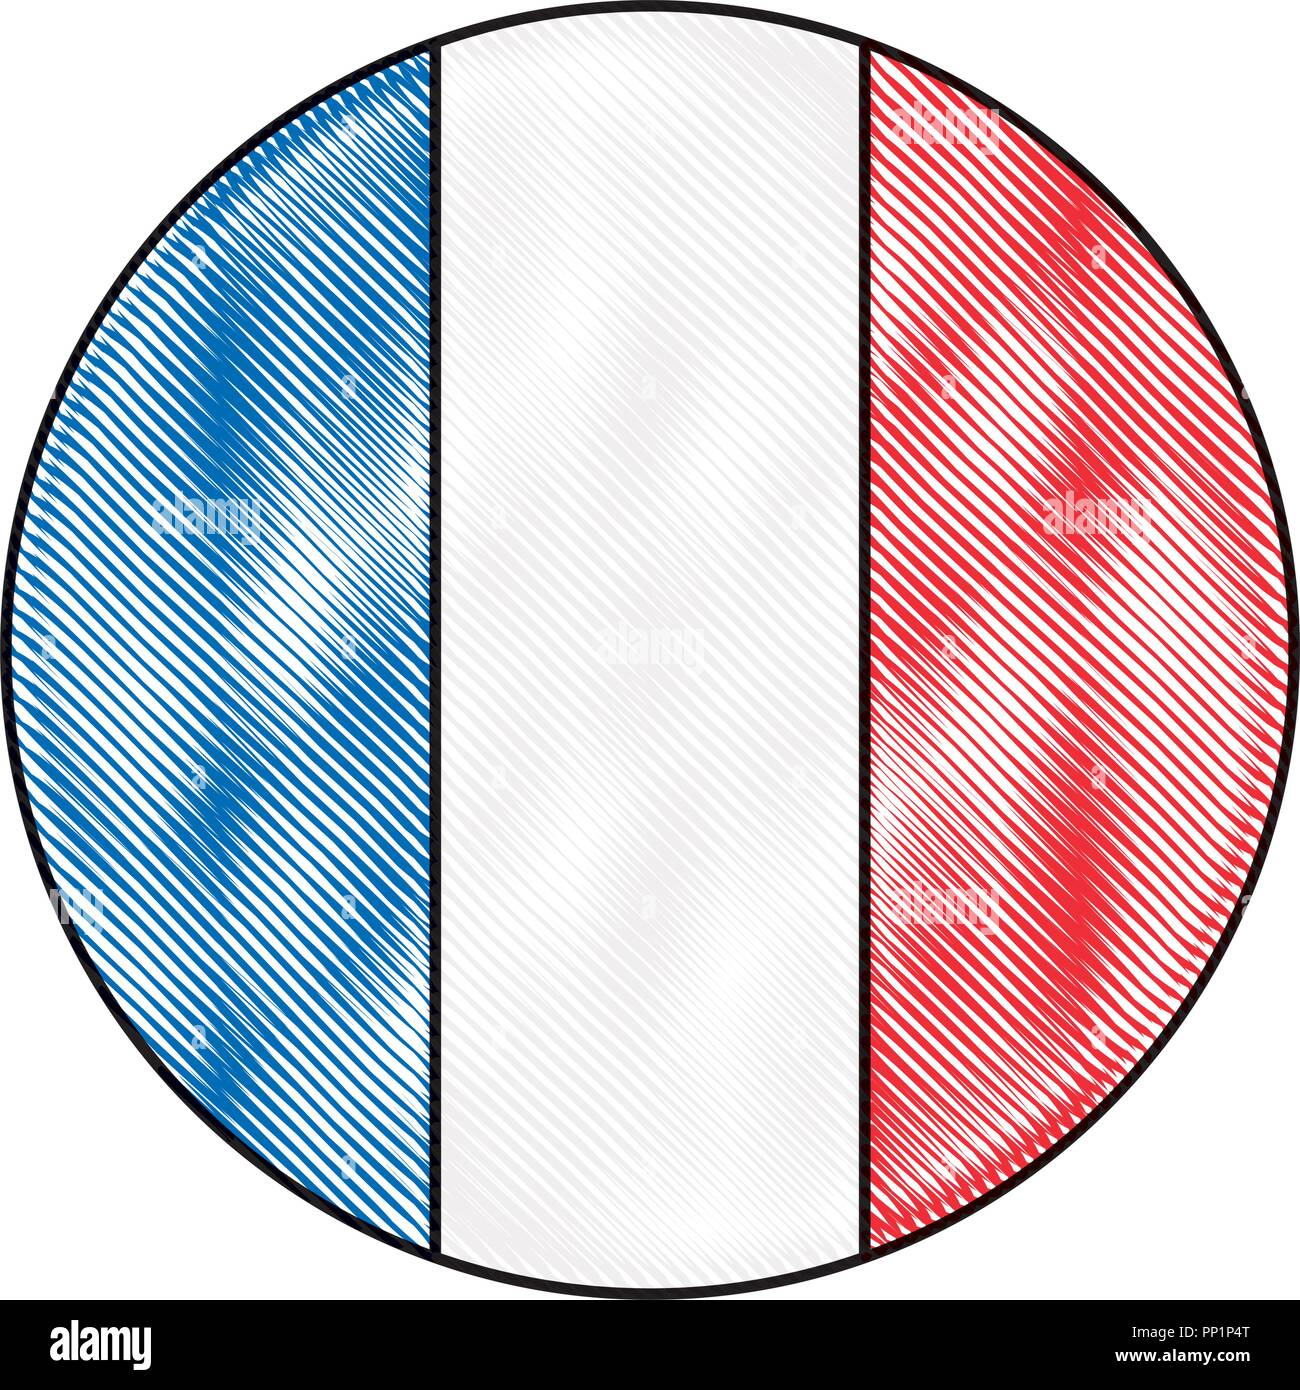 french paris flag in button icon vector illustration - Stock Image